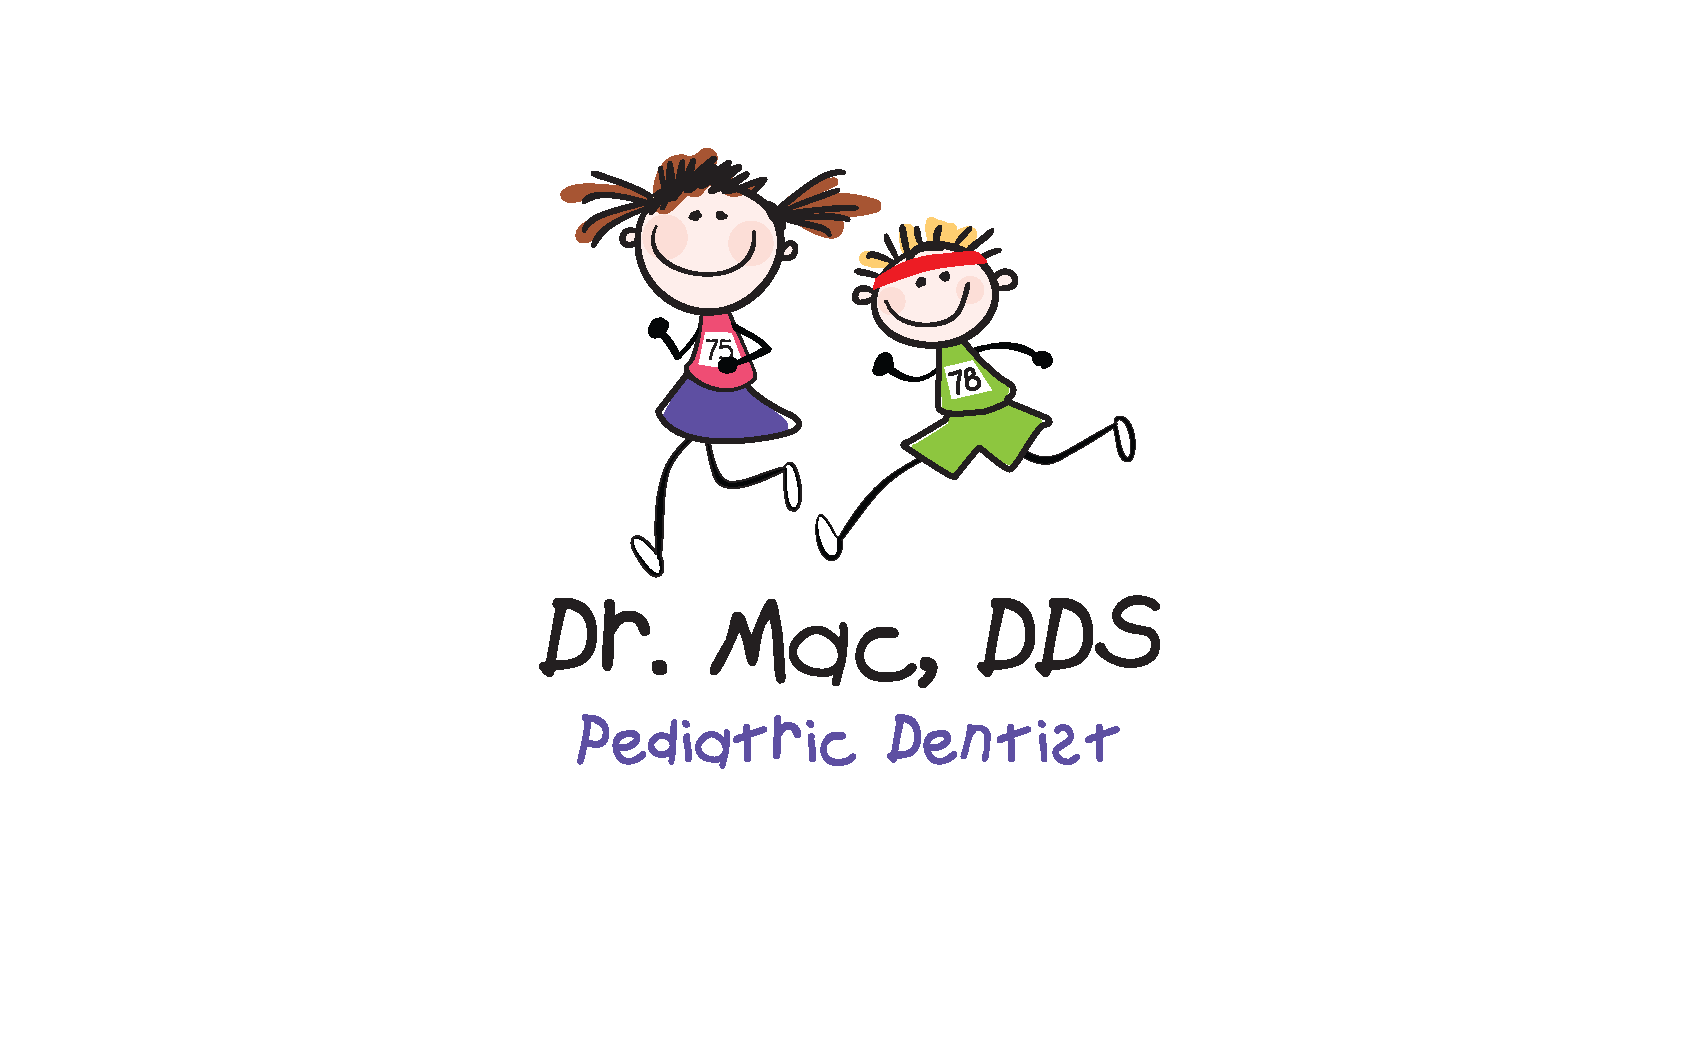 Dr. Mcaninch Pediatric Dentist